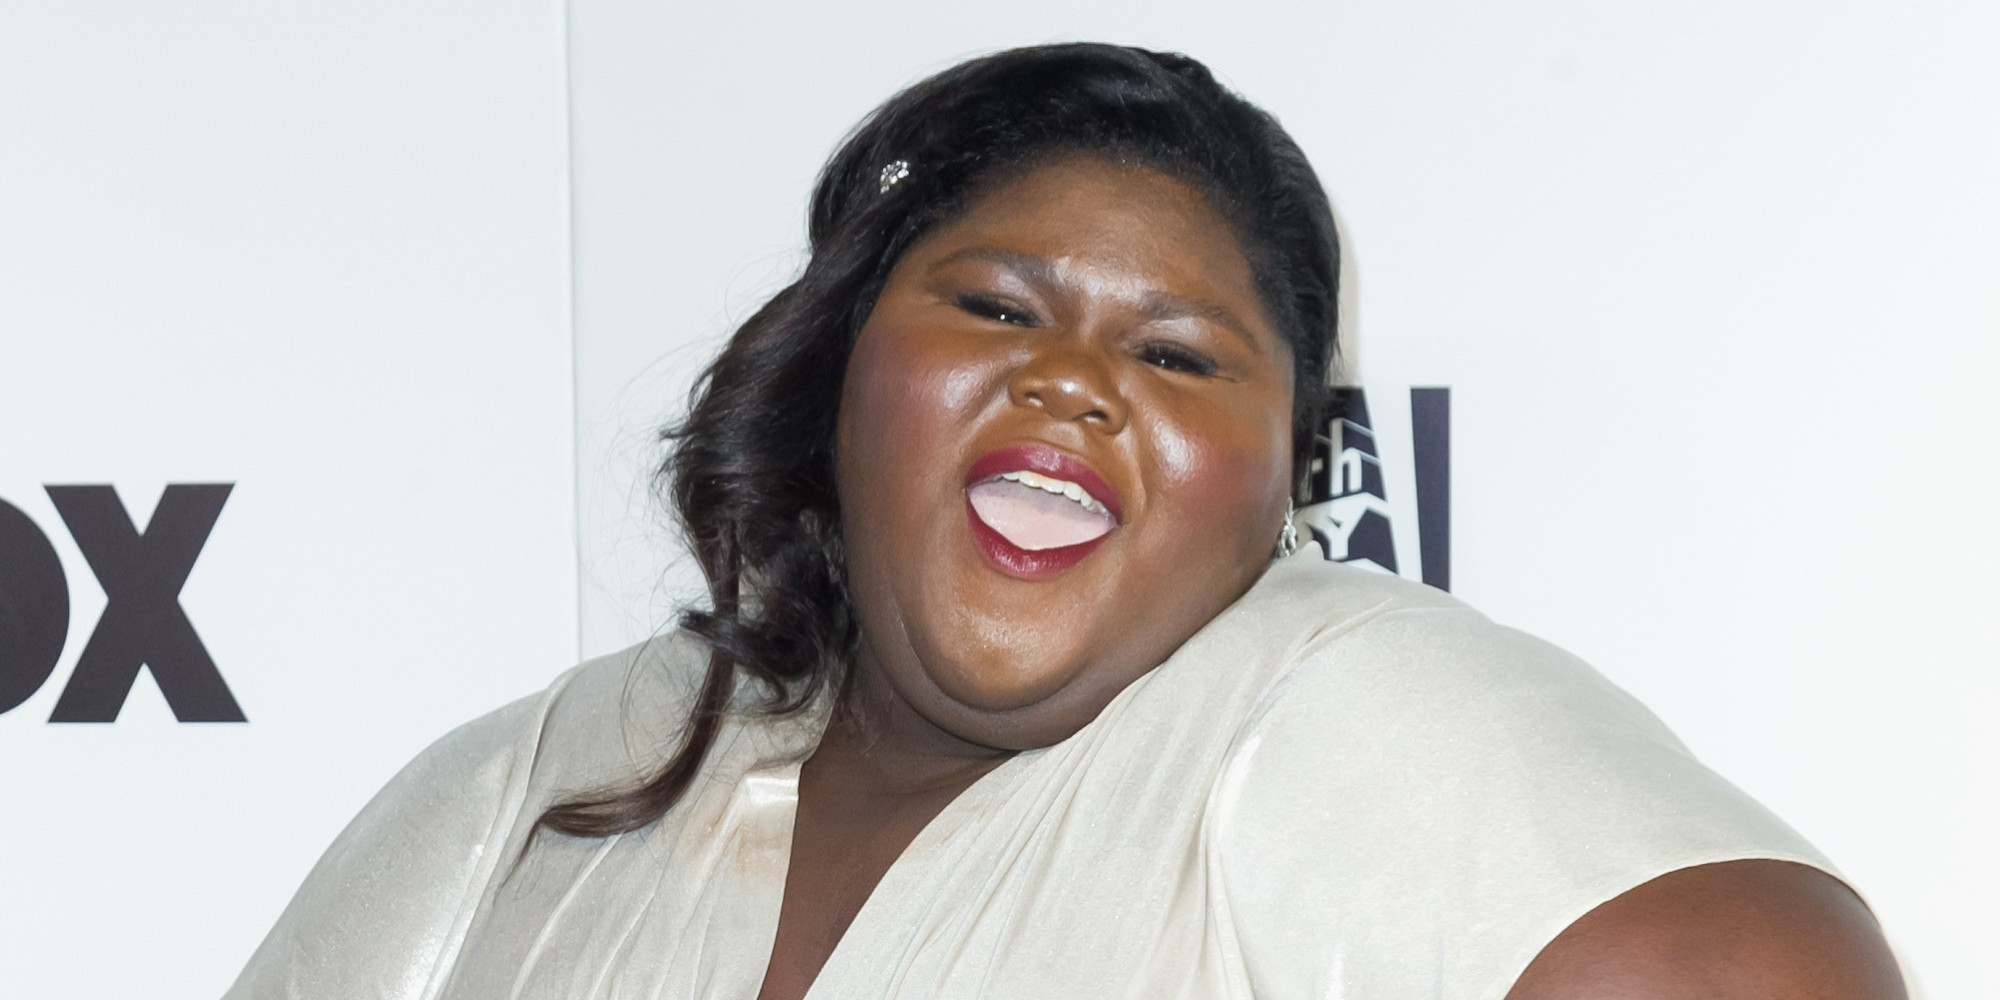 Gabourey Sidibe earned a  million dollar salary - leaving the net worth at 2 million in 2017